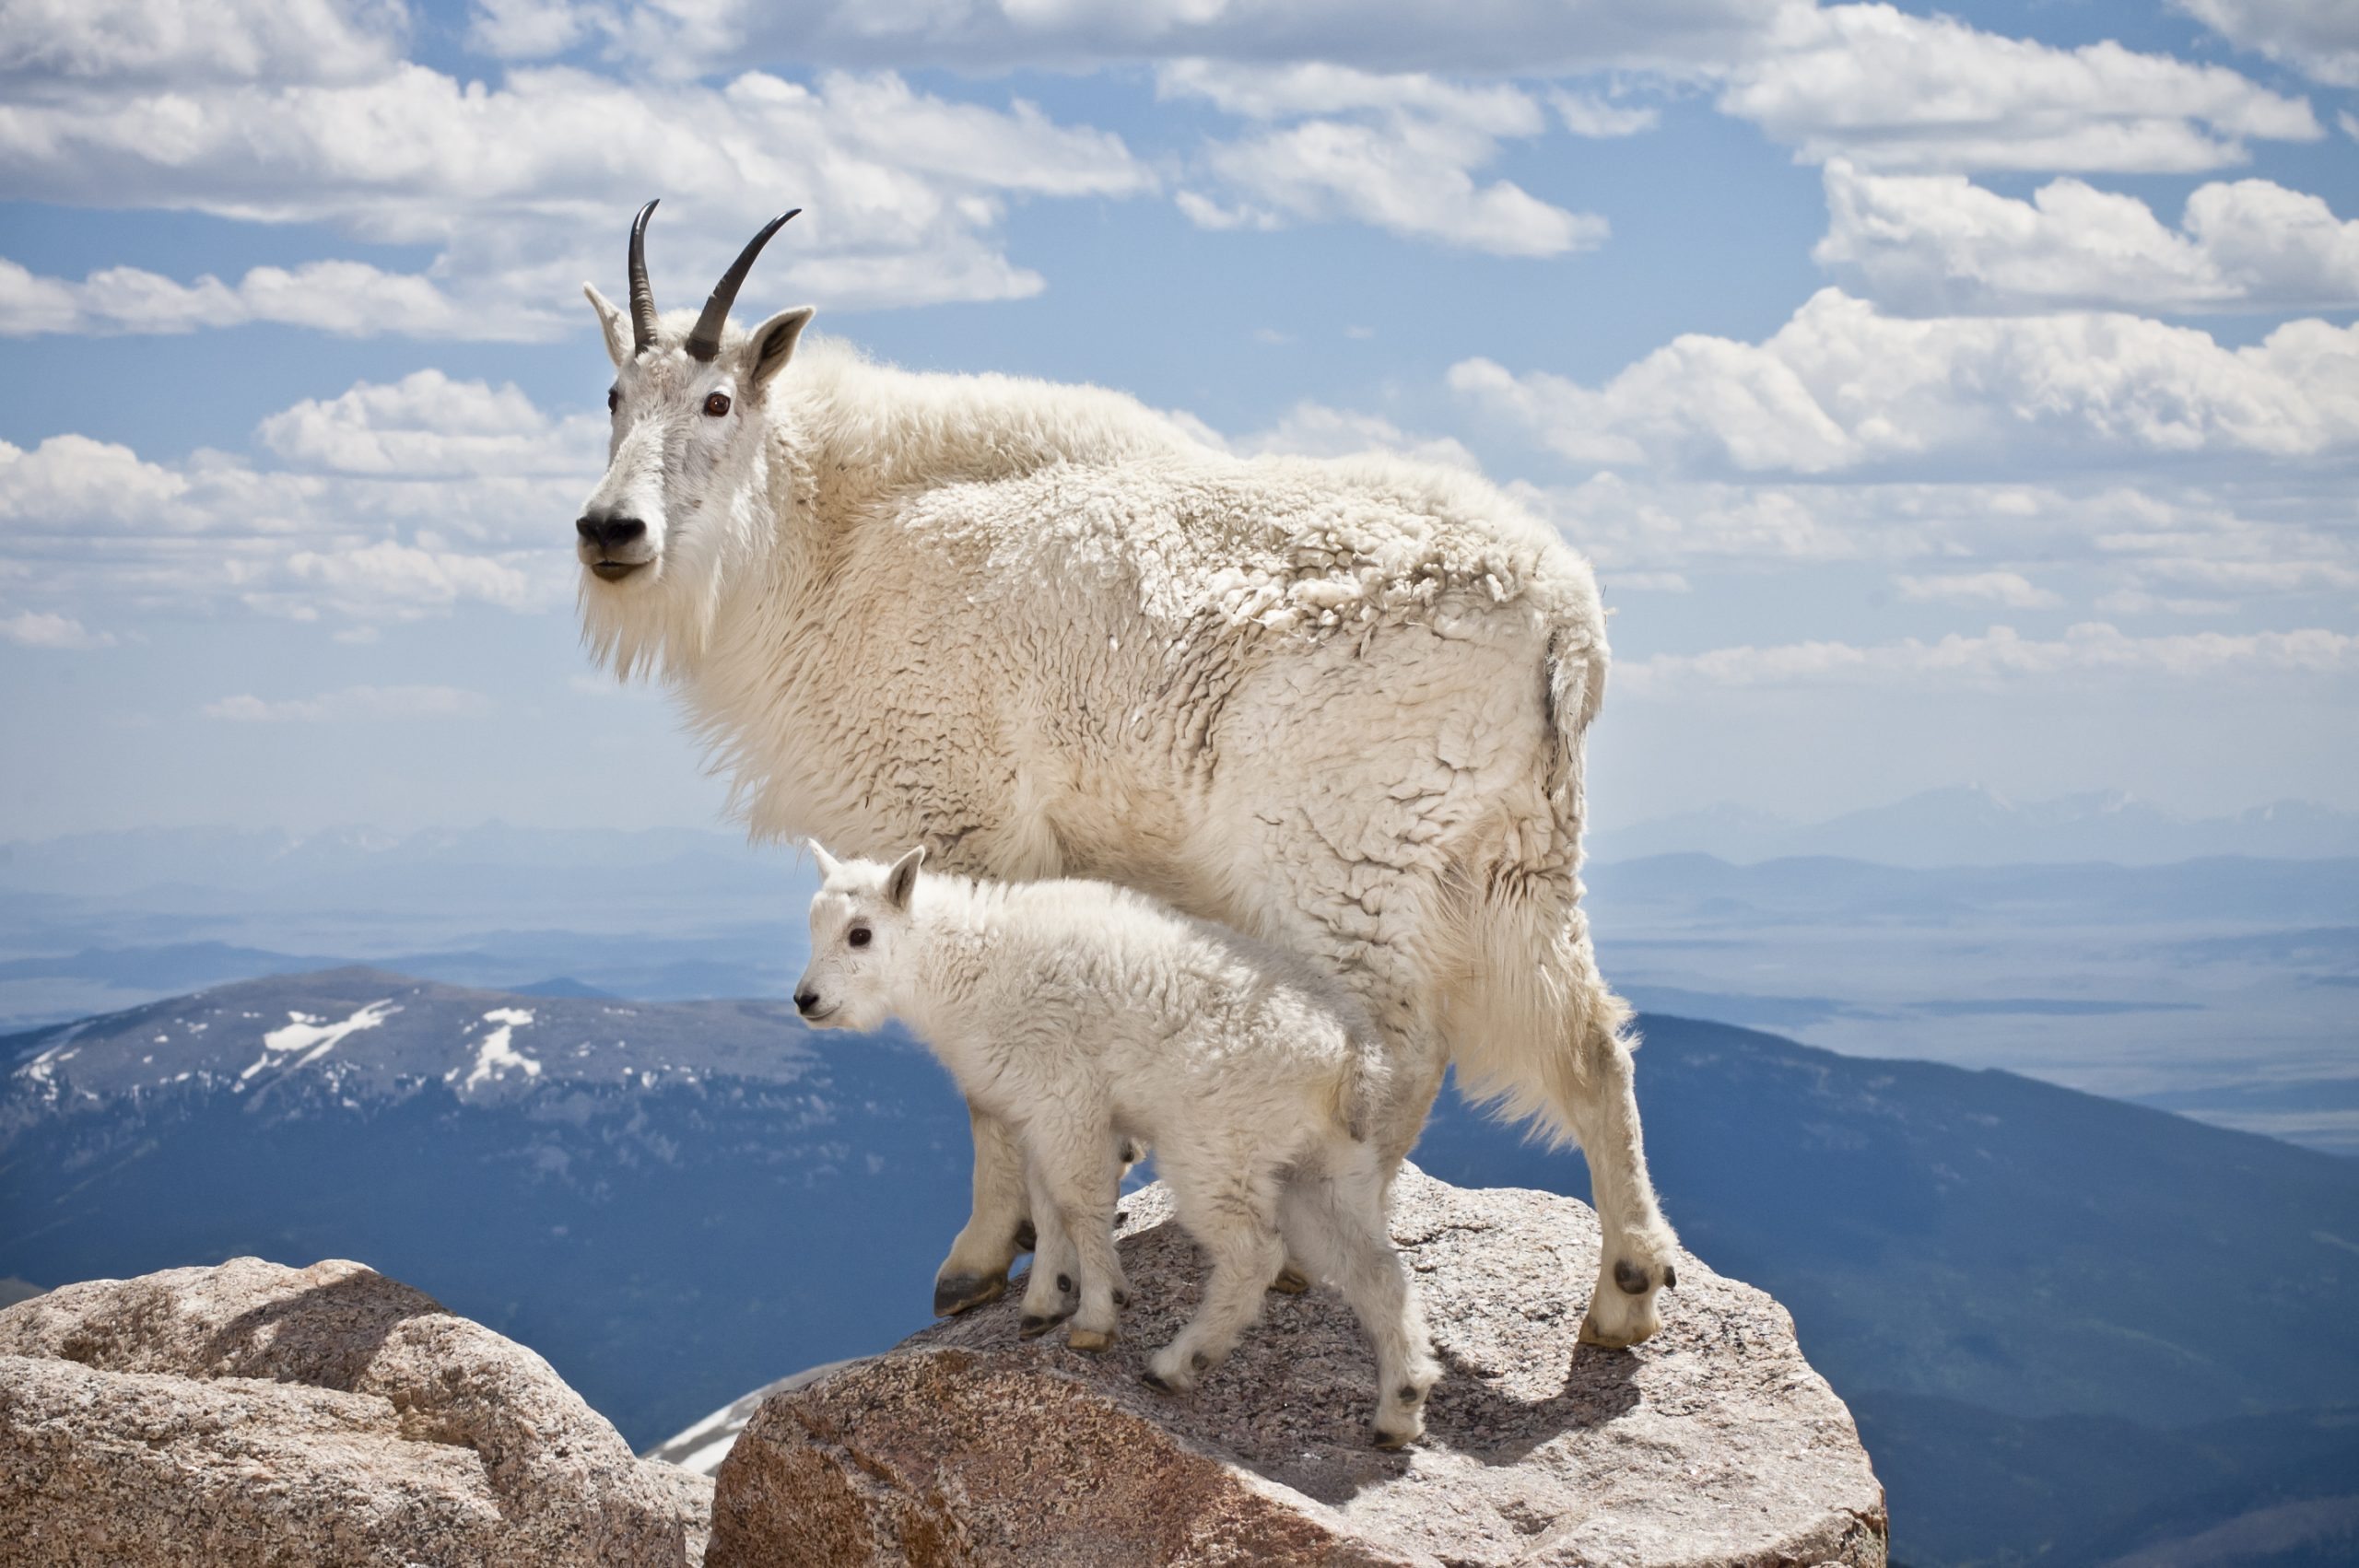 A pair of mountain goats stand proudly, high in the rocky mountains